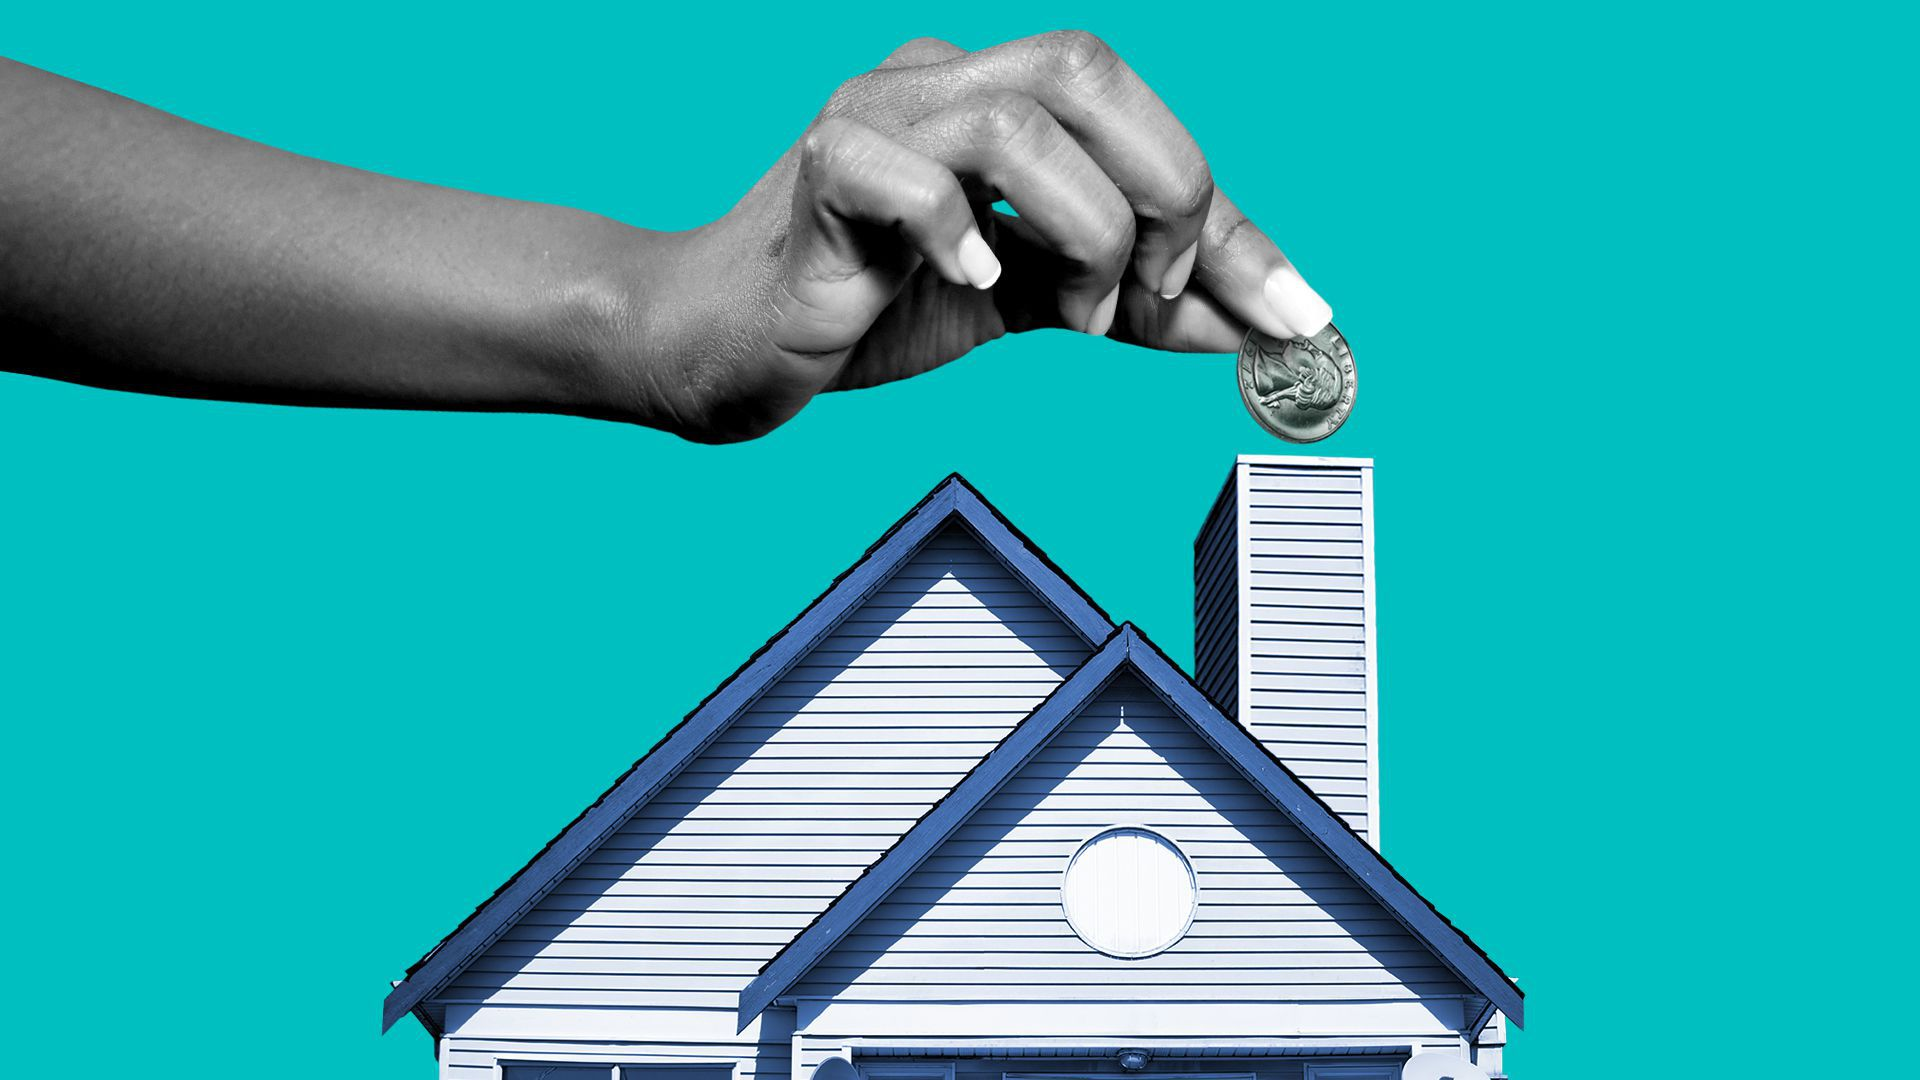 Illustration of a hand placing a quarter into a house chimney.